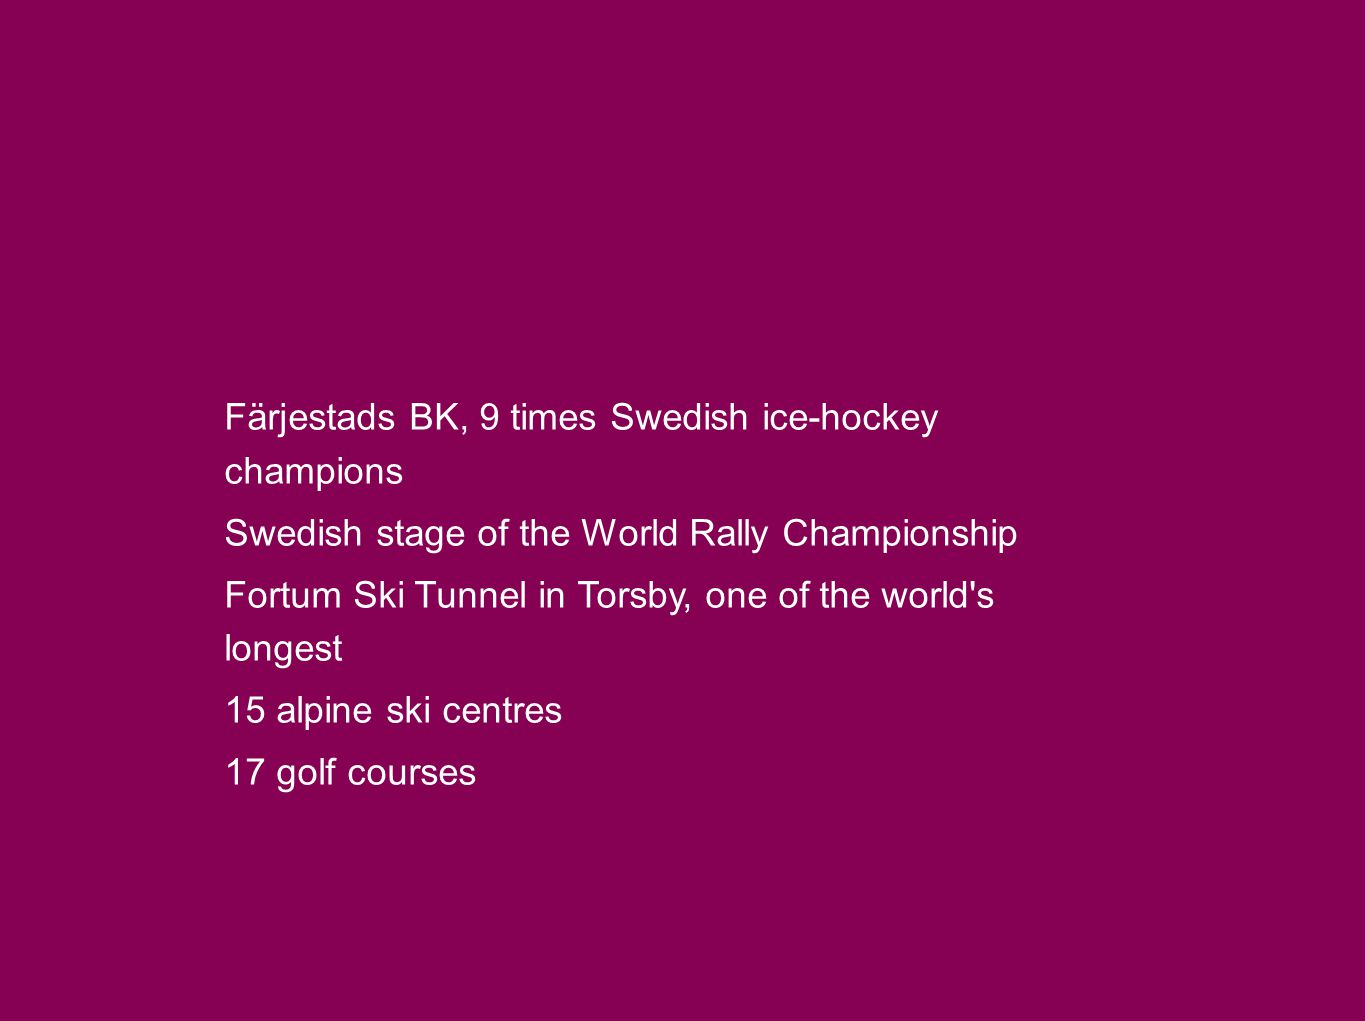 Färjestads BK, 9 times Swedish ice-hockey champions